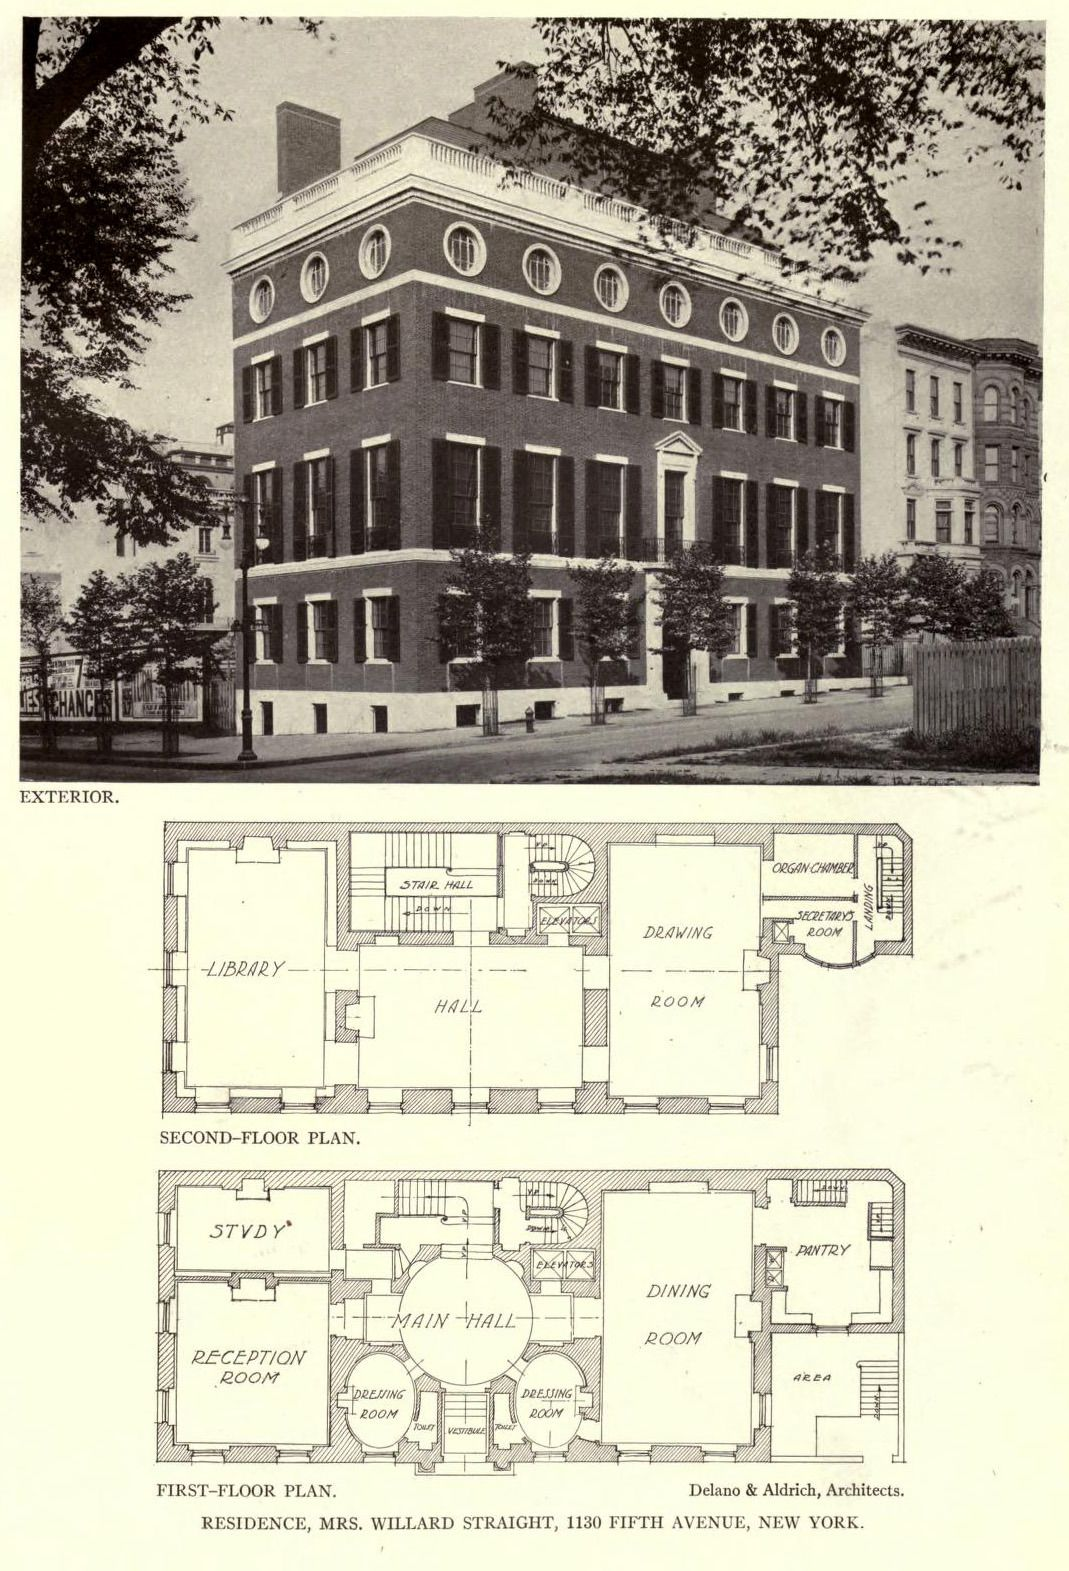 Archi Maps View And Floor Plans Of The Straight Residence Architectural Floor Plans Vintage House Plans Architecture Old